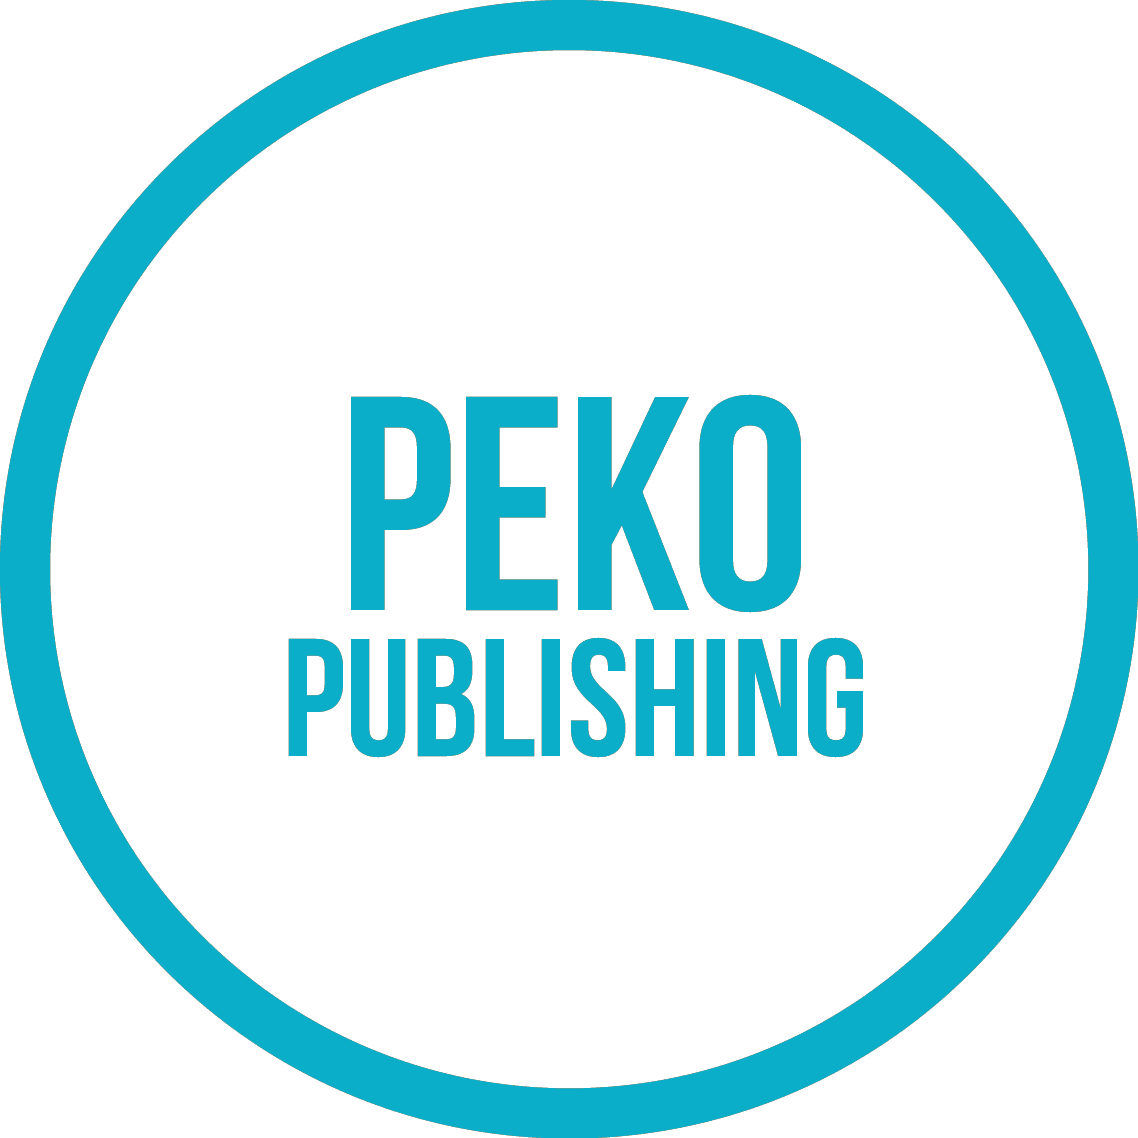 peko publishing || ak-interactive